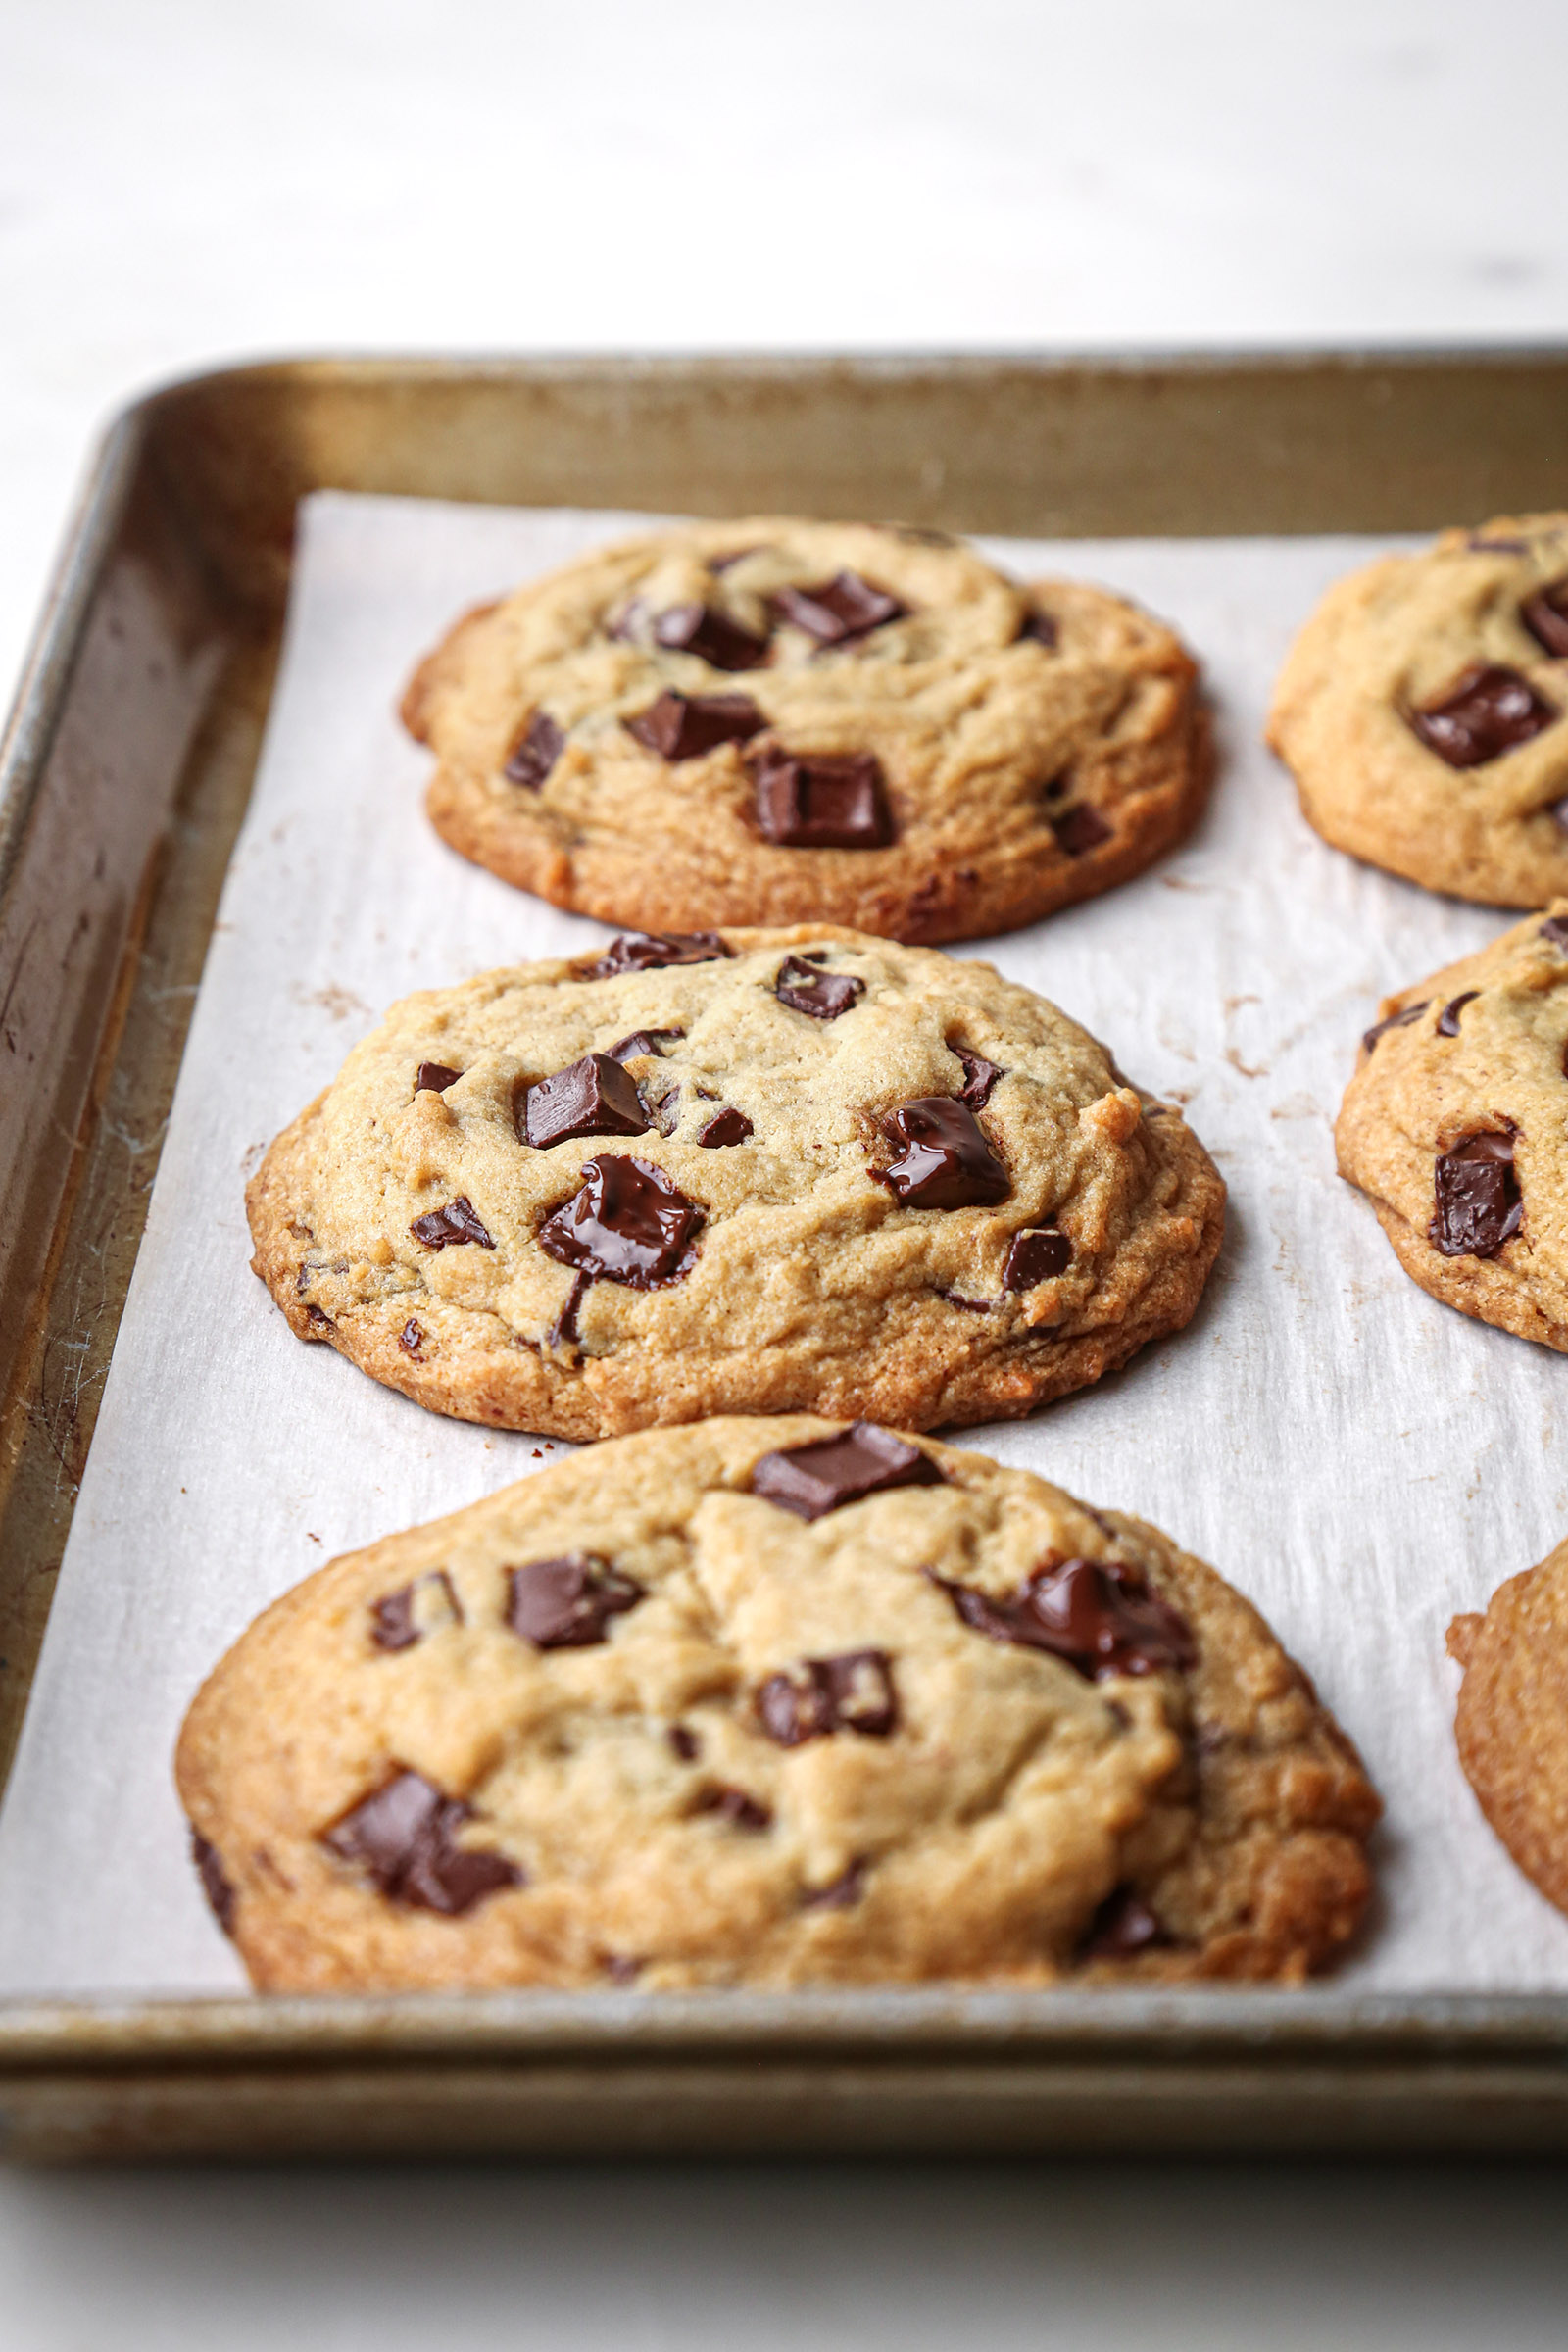 Best Chewy Chocolate Chip Cookies | Vegan friendly with gluten-free option